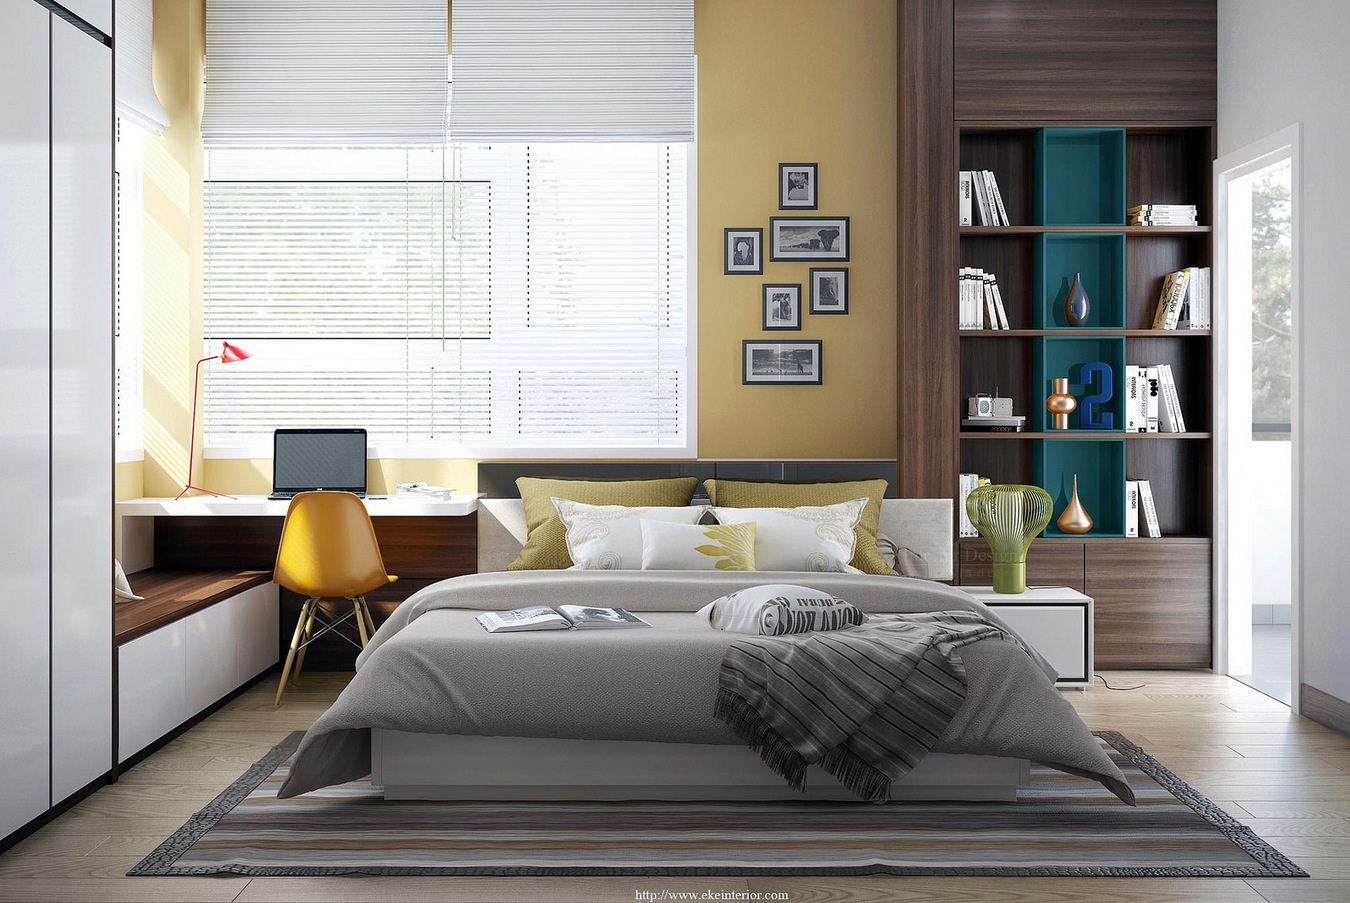 20 modern bedroom designs - Bedroom Decoration Design